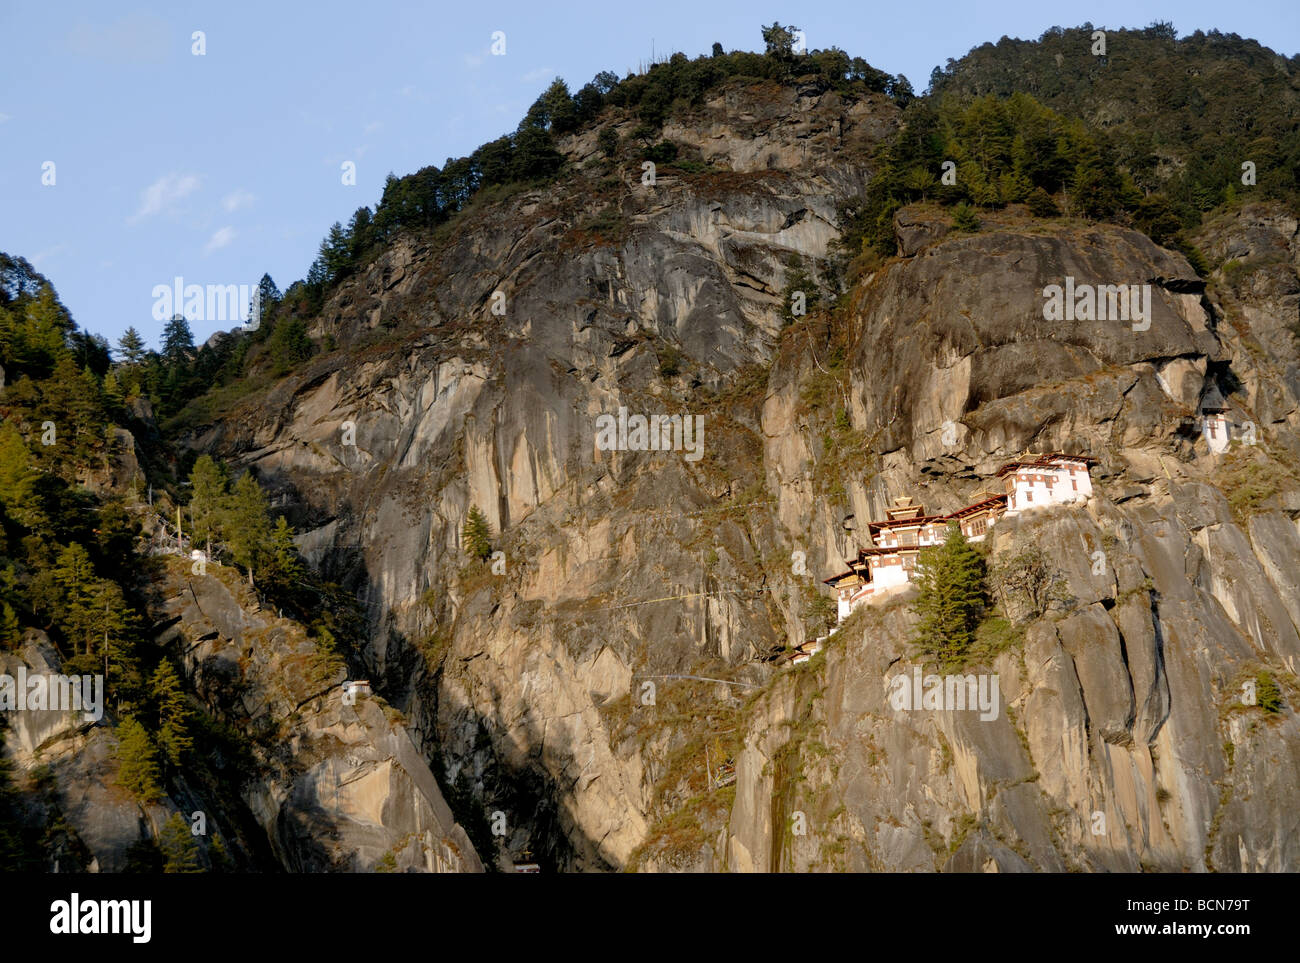 Paro Taktsang Goemba, monastery, know as the  Tigers Nest is perched precariously half way up a mountain side cliff. Stock Photo